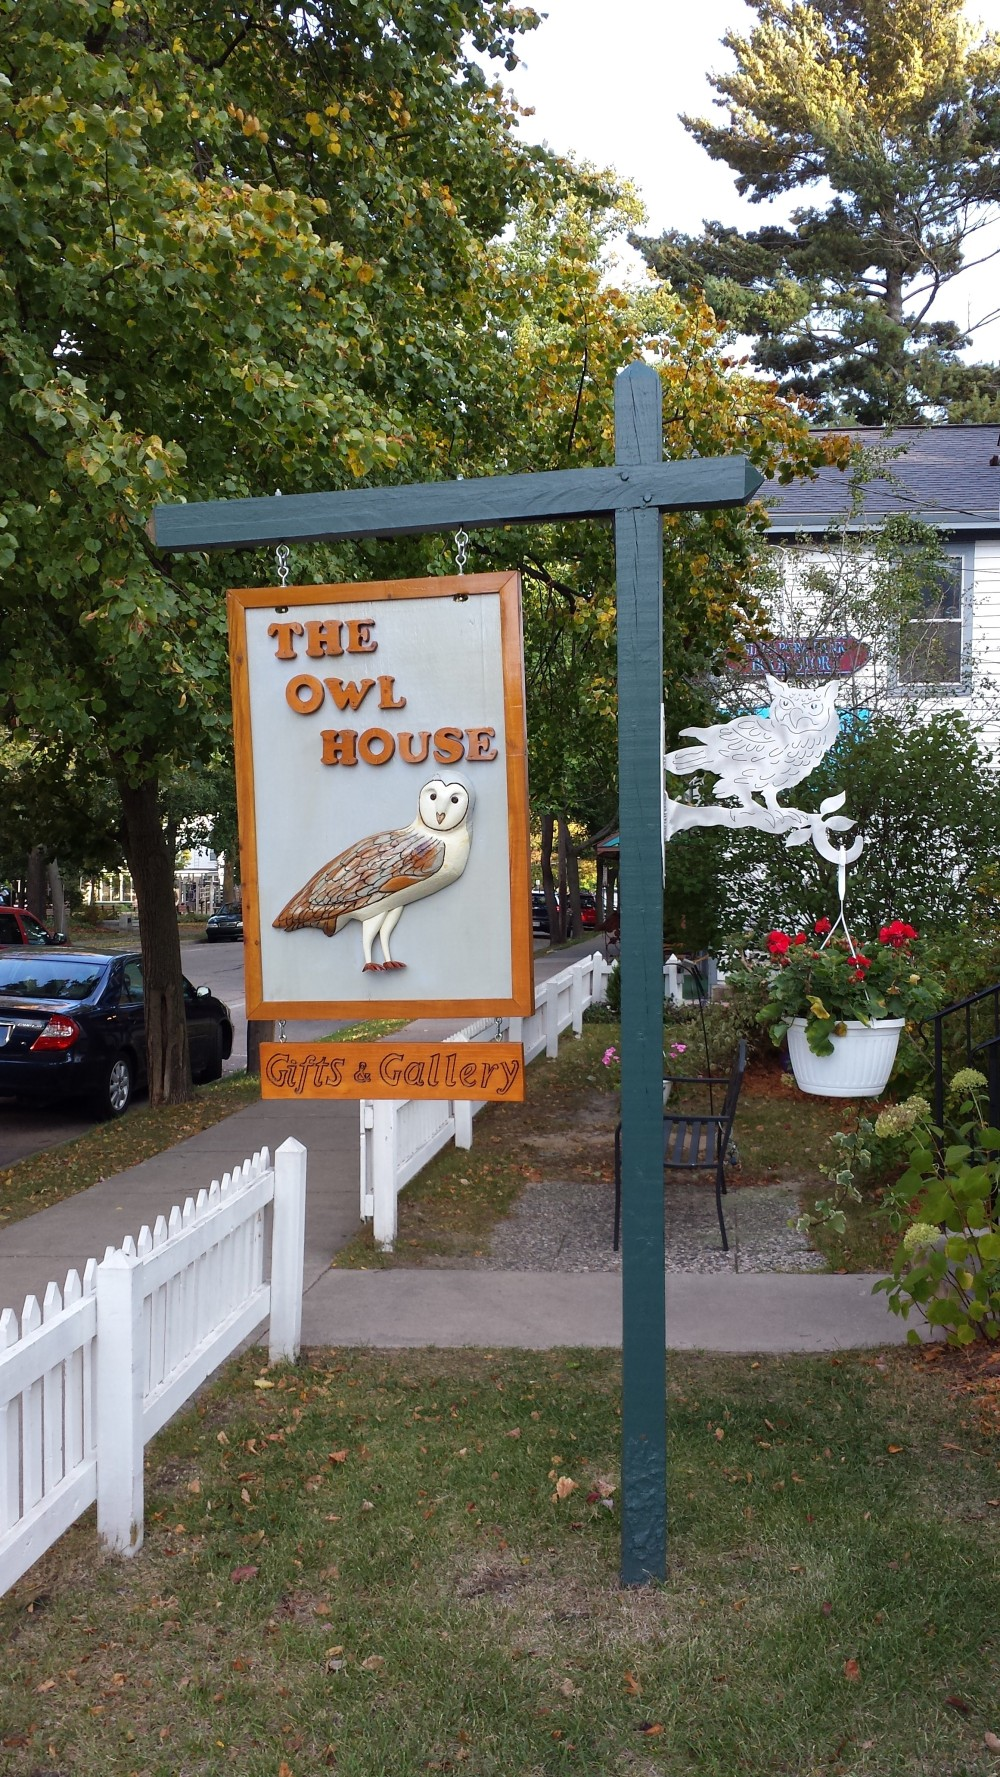 The Owl House - I liked the sign!